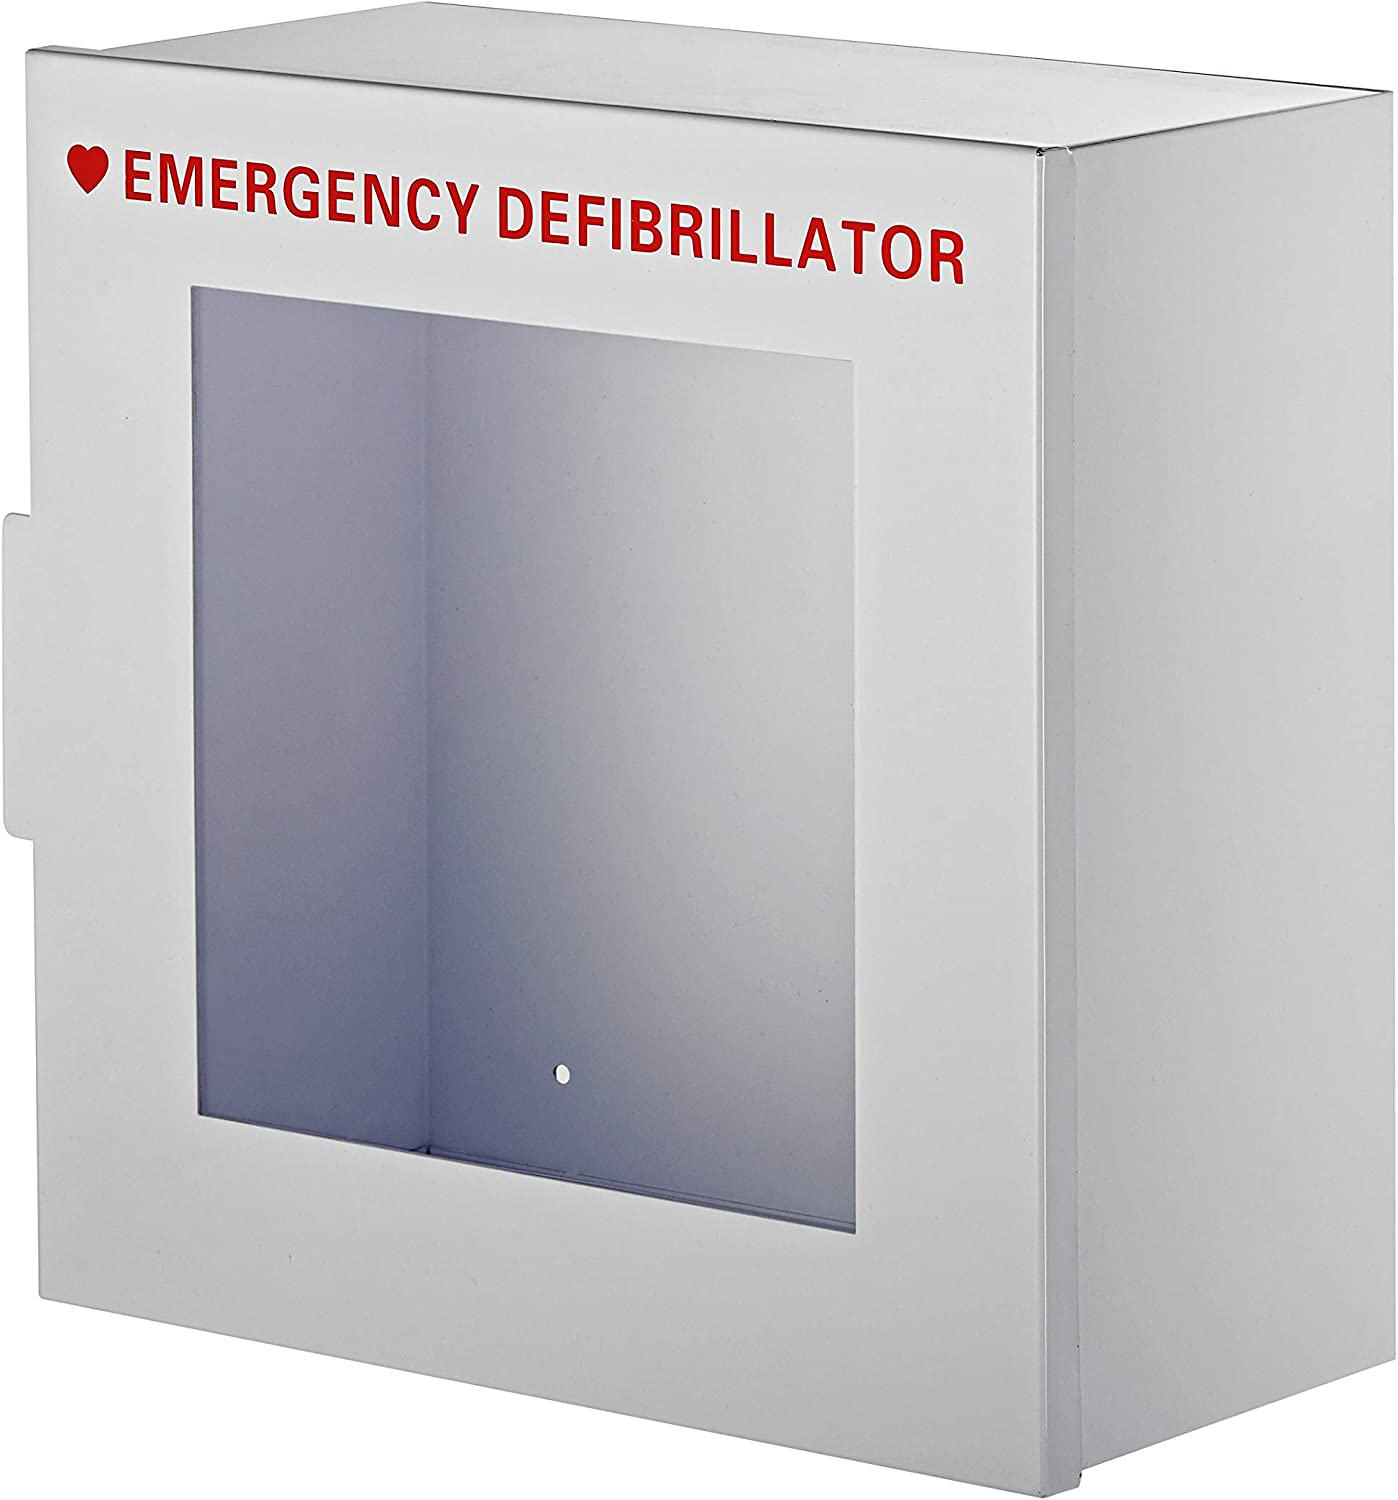 AdirMed Non-Alarmed Steel Cabinet Defibrillators 15 W x 15 H x 7 – Standard Wall Mounted Enclosure – Easy Access Storage for Emergency Situation for Home Office